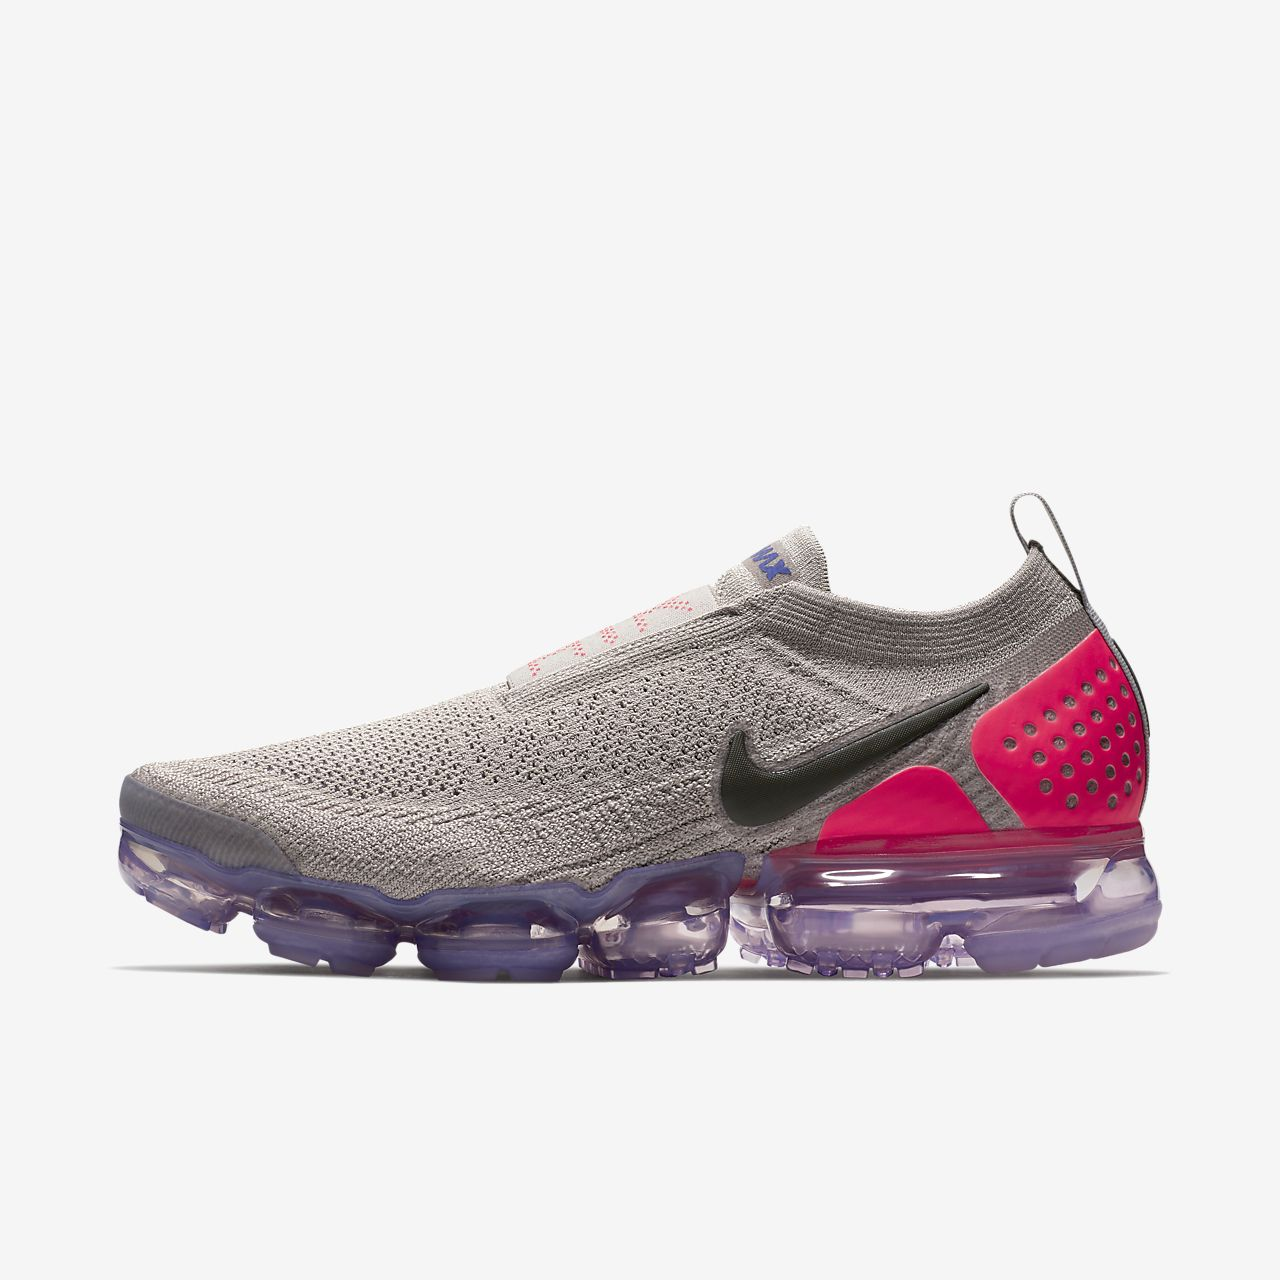 reputable site 7a2ad f5917 ... sweden nike air vapormax flyknit moc 2 sko fdcc0 6d263